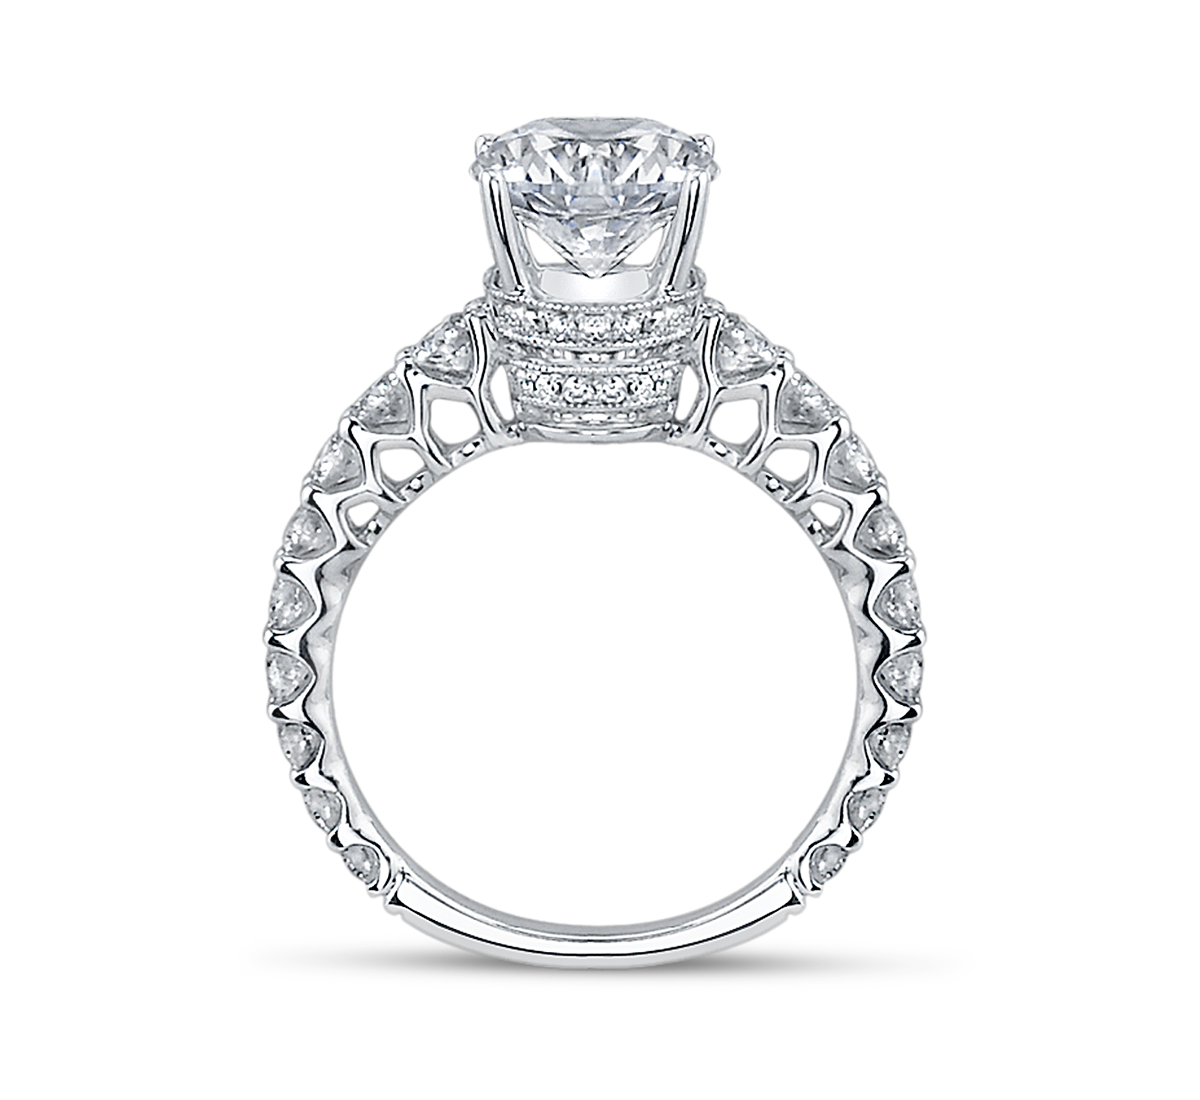 price jewellery engagement sale with near owner me for women diamond rings by